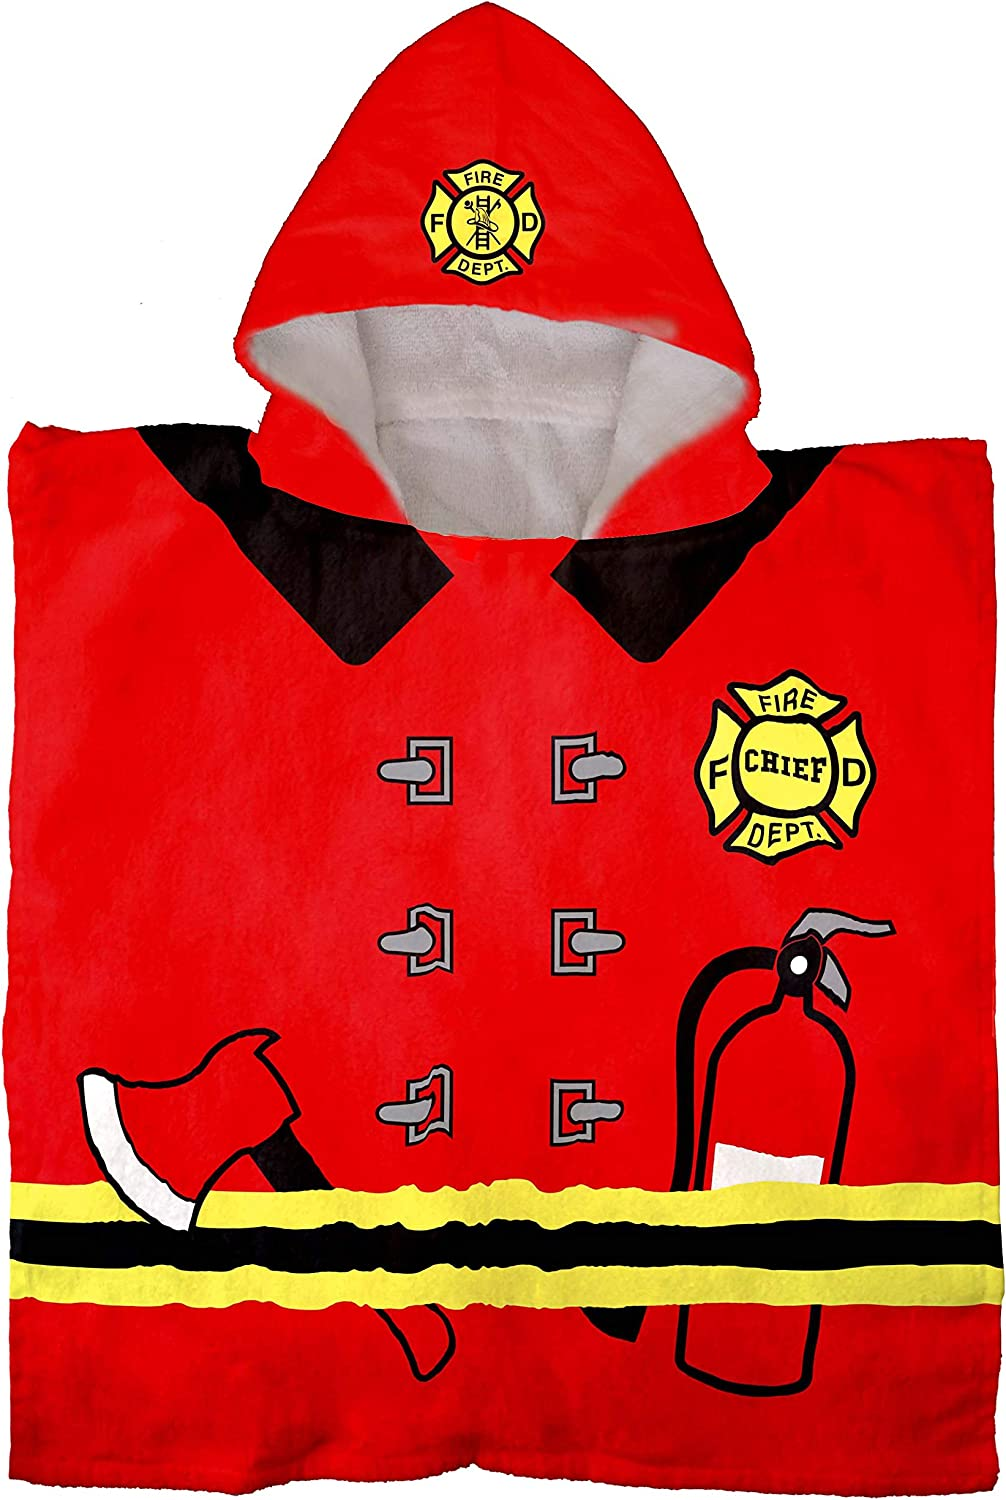 Jay Franco Trend Collector Fire Fighter Beach All items free shipping Kids Hoo Bath 55% OFF Pool